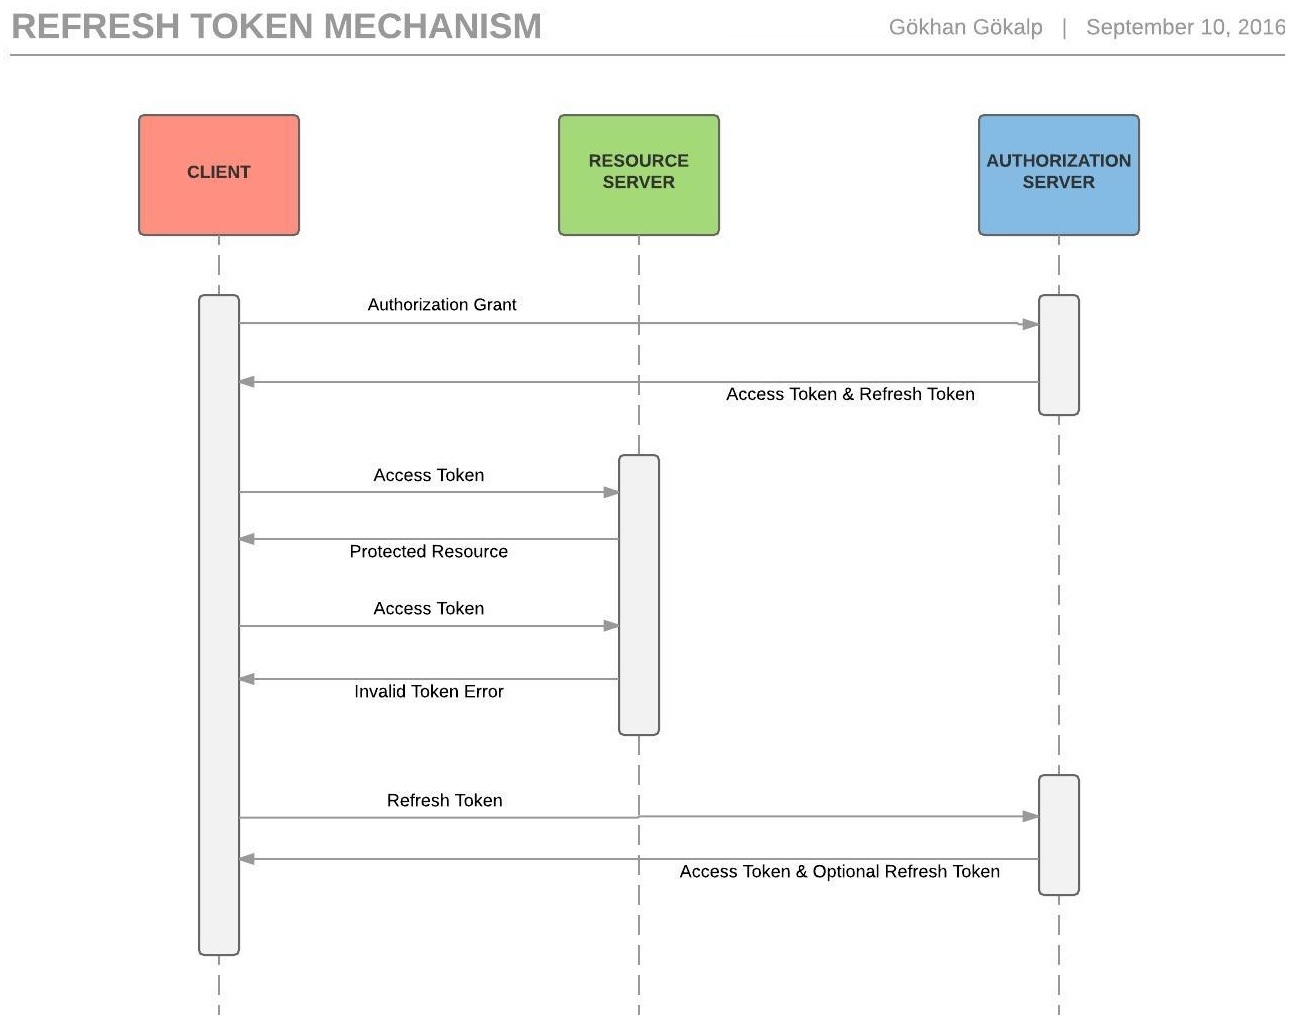 refresh-token-mechanism